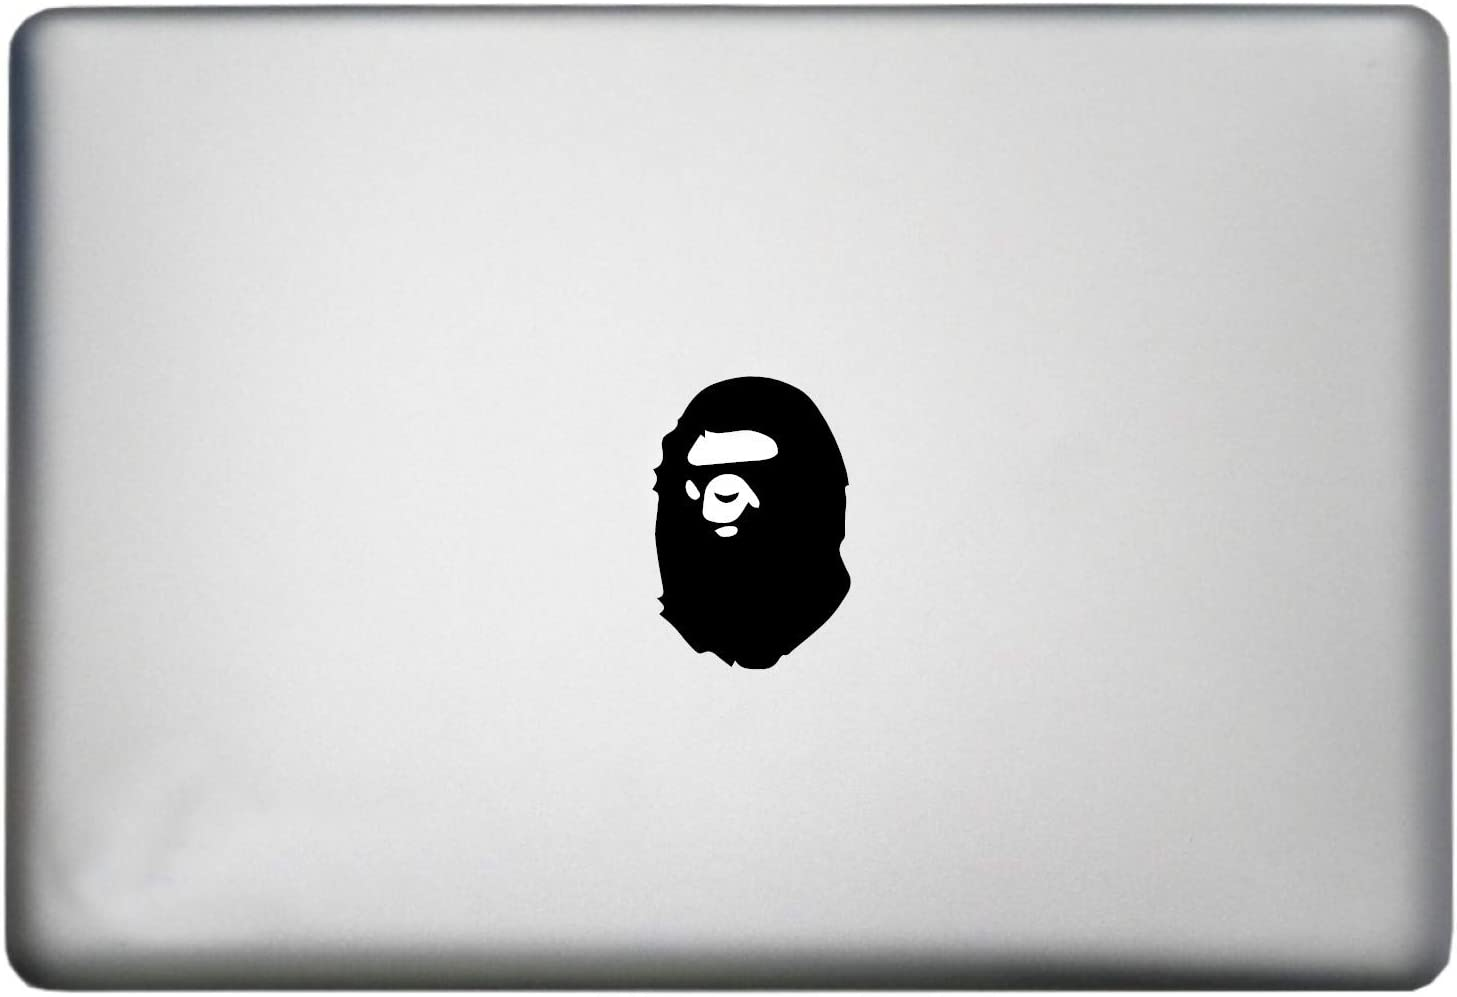 Gorilla Bape Ape Sticker MacBook Decal is a Bathing Ape Woodland Animals Decal. Laptop Sizes 11, 12, 13 and 15 inch. Looks Great with Your Zoo Animals Theme. Many Colors-Black